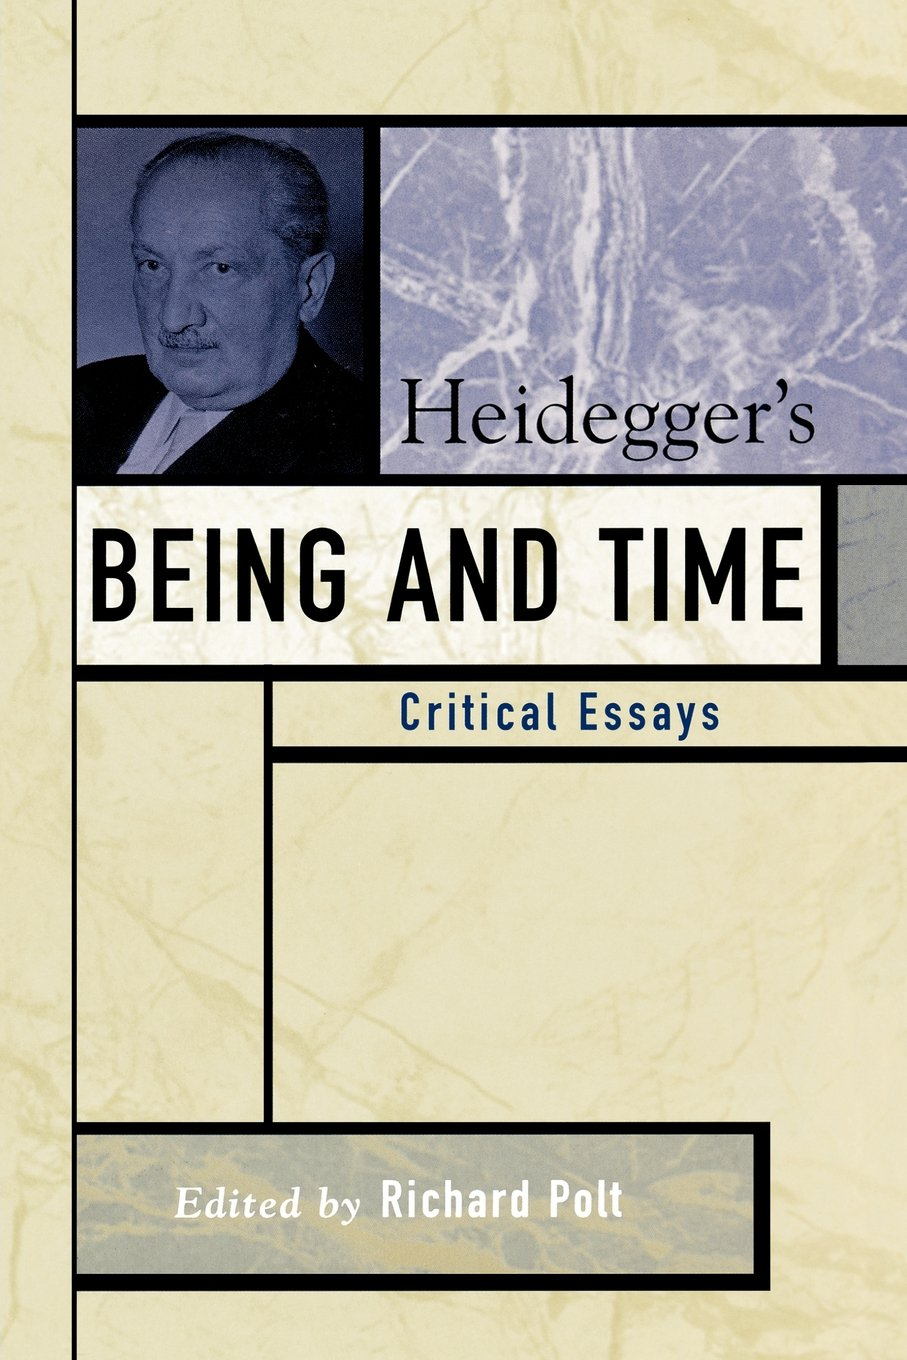 Download Heidegger's Being and Time: Critical Essays (Critical Essays on the Classics Series) ebook